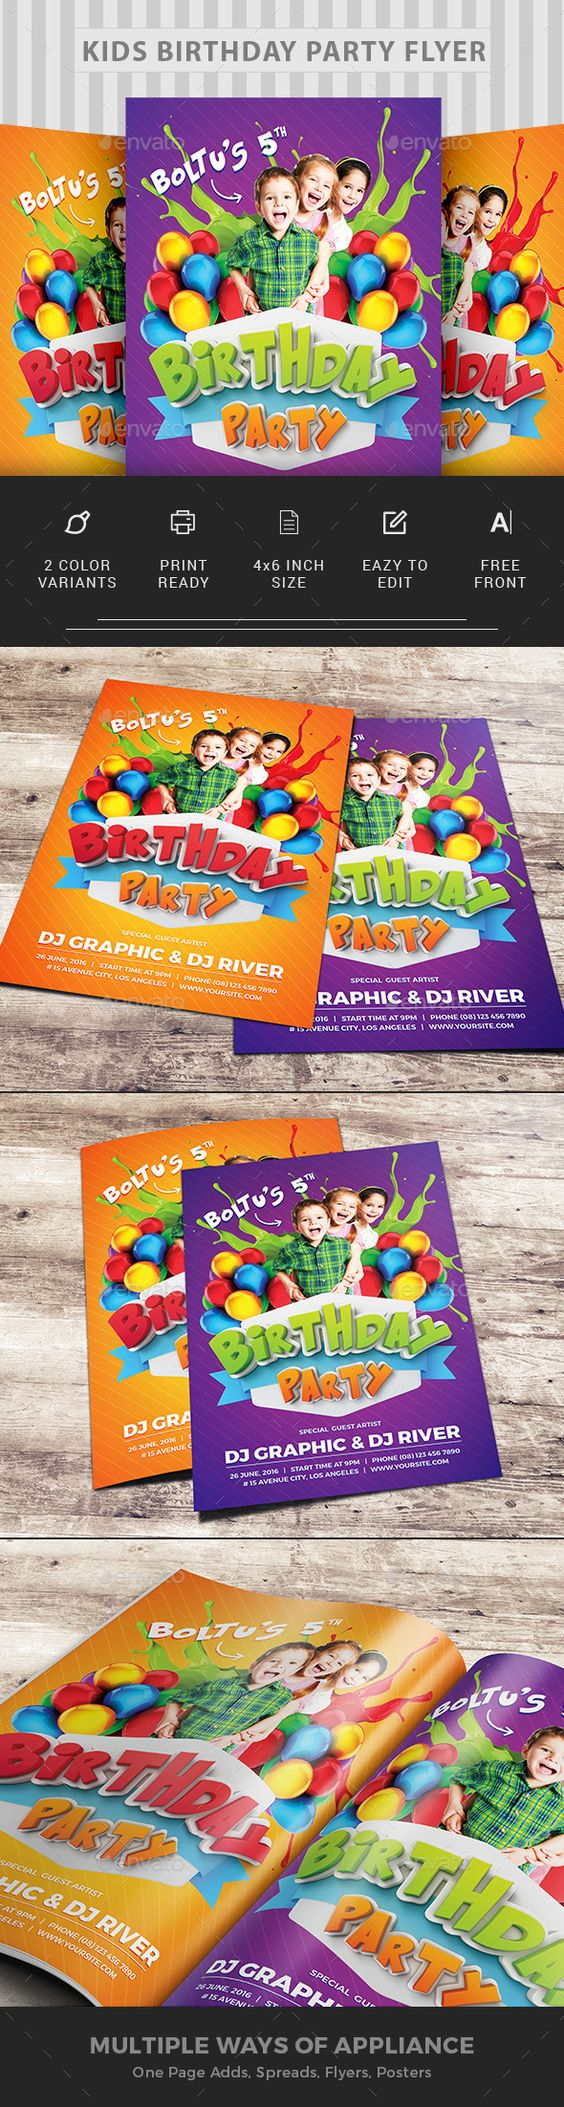 kids birthday party invitation flyer template design and birthdays kids birthday party flyer design invitation clubs parties event flyer template psd